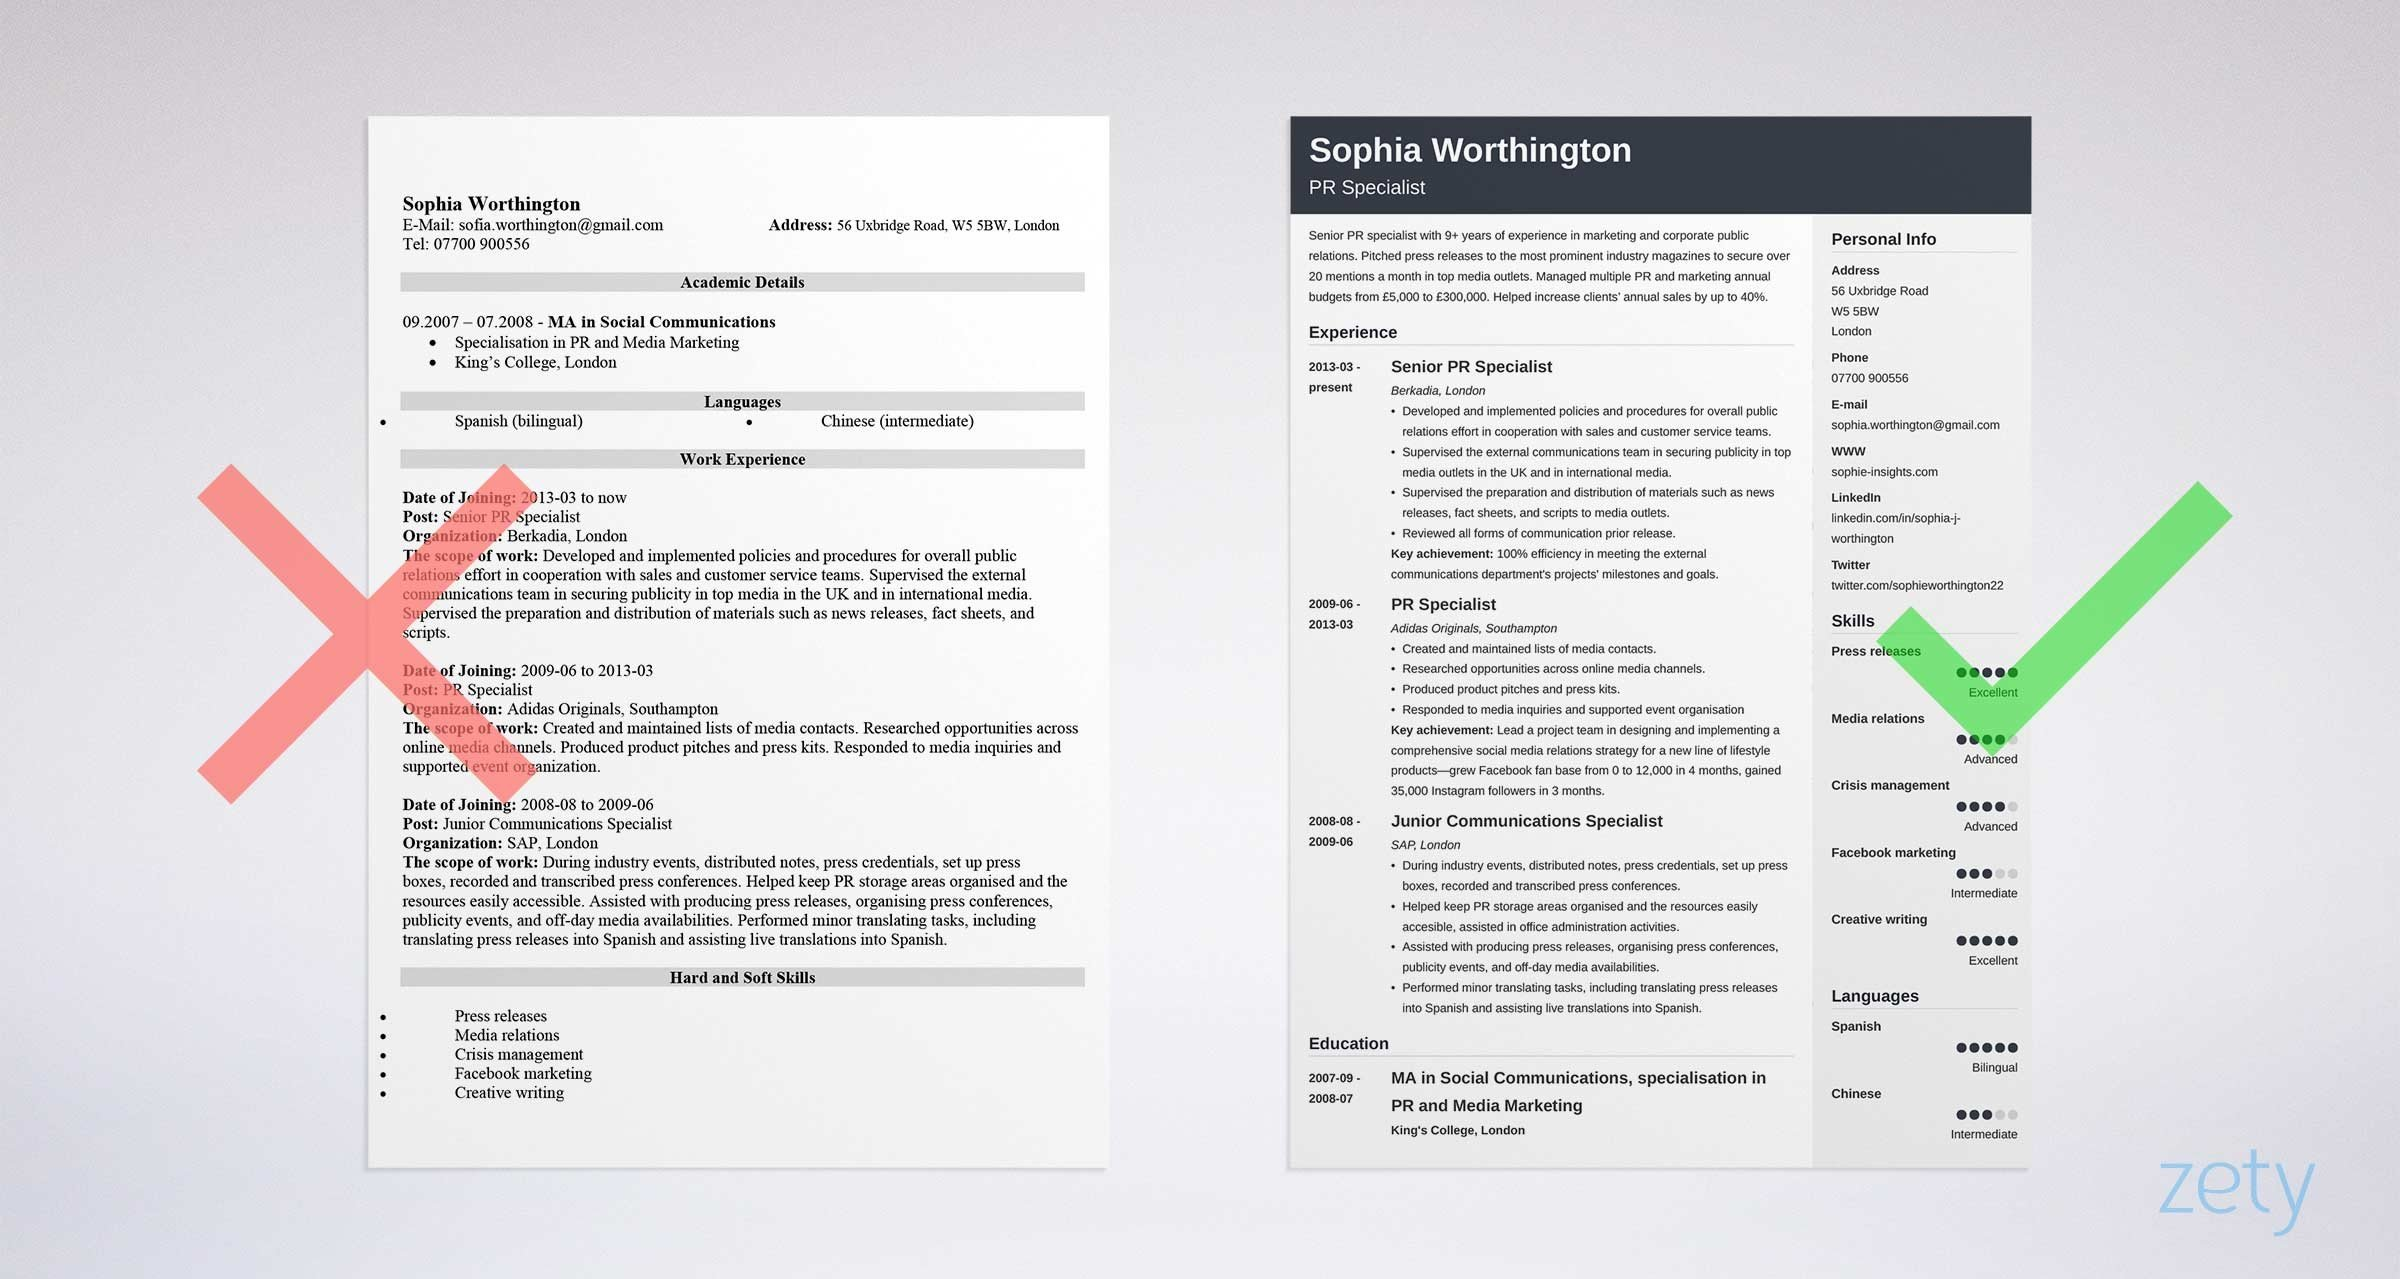 cv format  the best structure for a curriculum vitae  30  examples